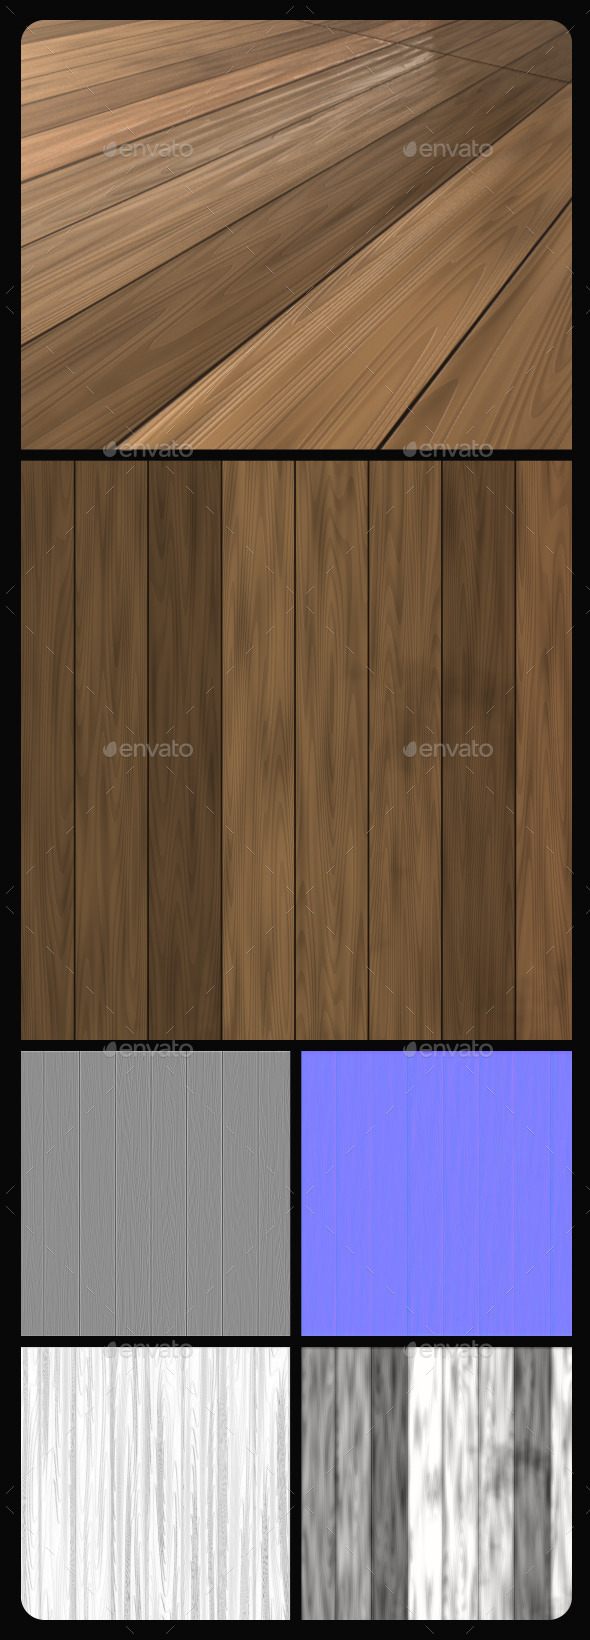 3DOcean Wood Planks Tile Texture 2 10842785